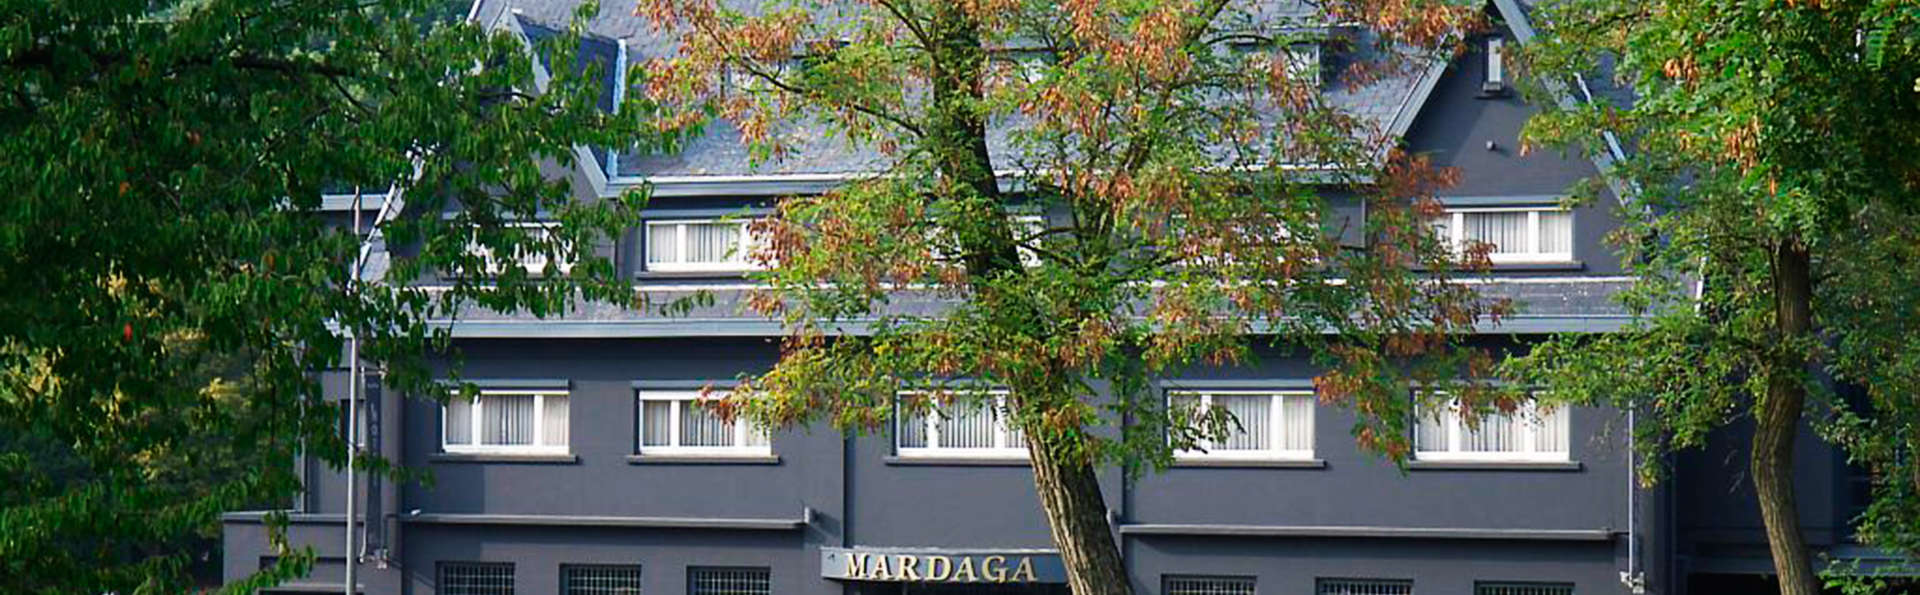 Hotel Mardaga - Different Hotels - EDIT_front.jpg